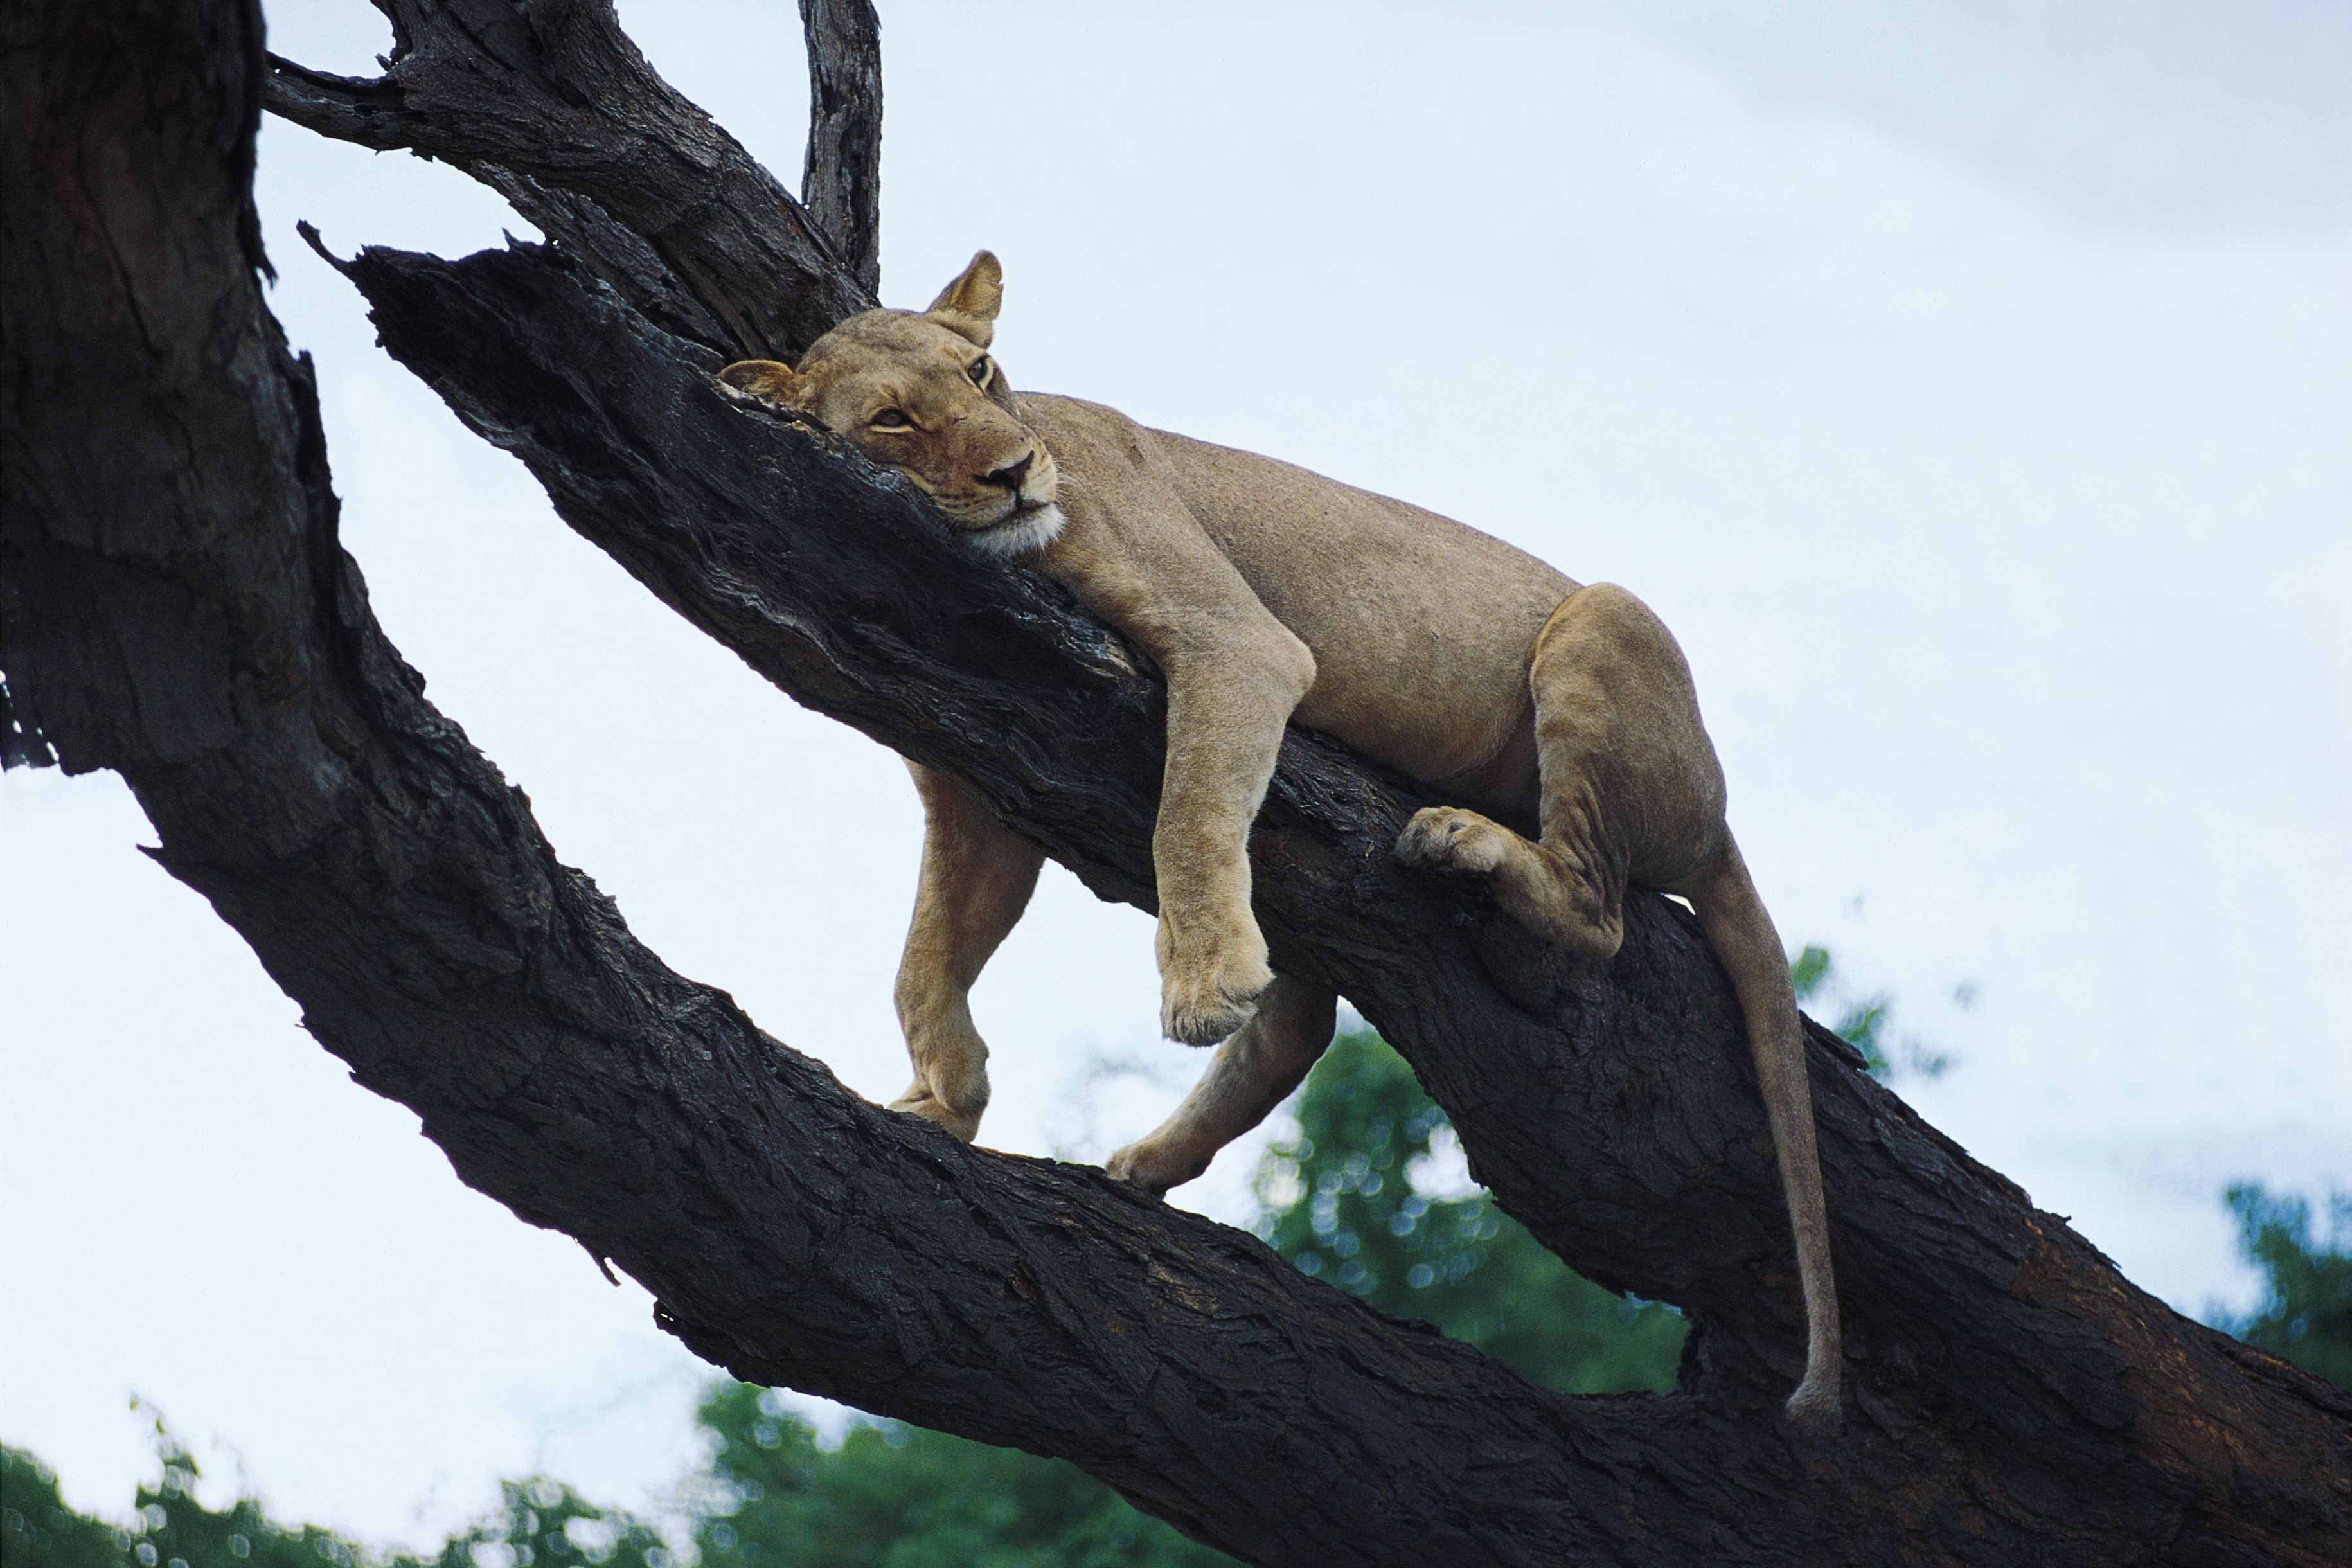 119252 download wallpaper Animals, Lion, Wood, Tree, Relaxation, Rest, Predator screensavers and pictures for free